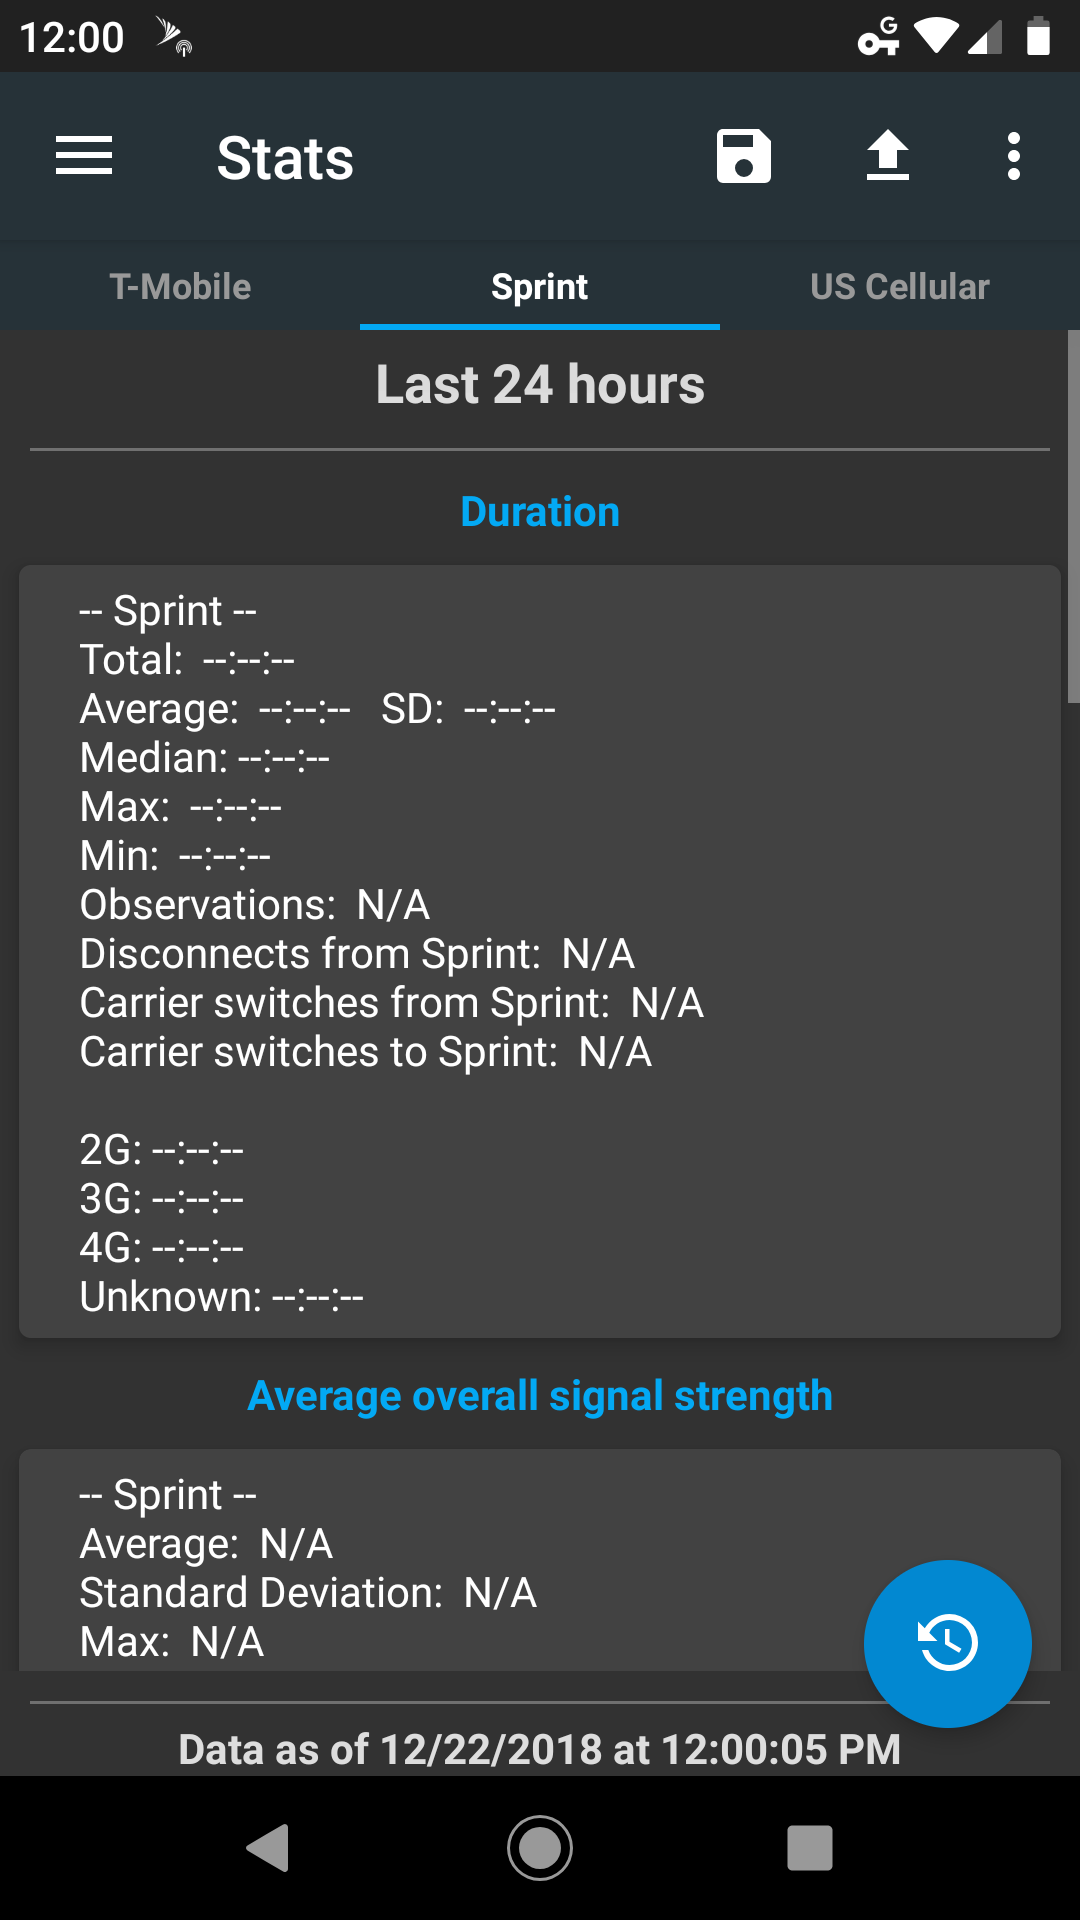 Tips for: Couldn't Maximize Coverage and Intermittent signal